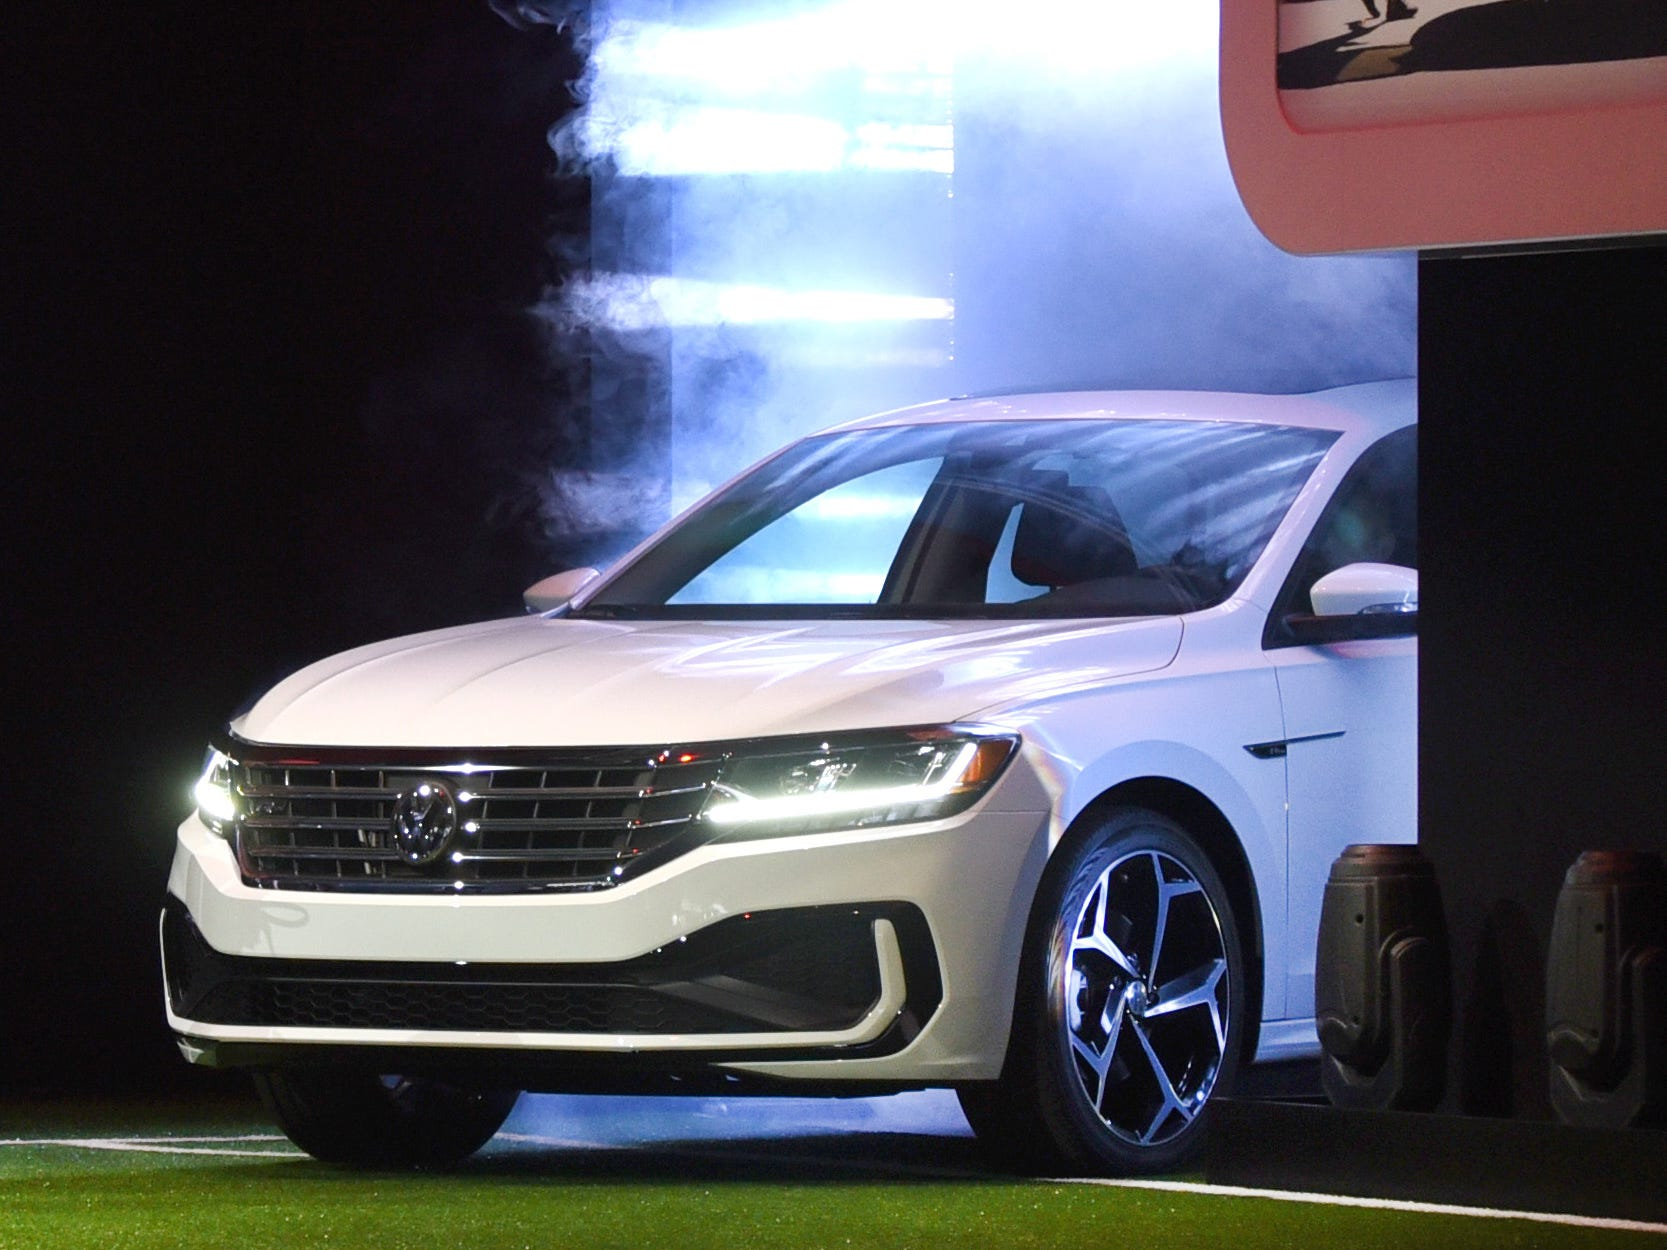 Cameras roll as the 2020 Volkswagen Passat clears the smoke at the Detroit International Auto Show at Cobo Center on Monday, Jan. 14, 2019.